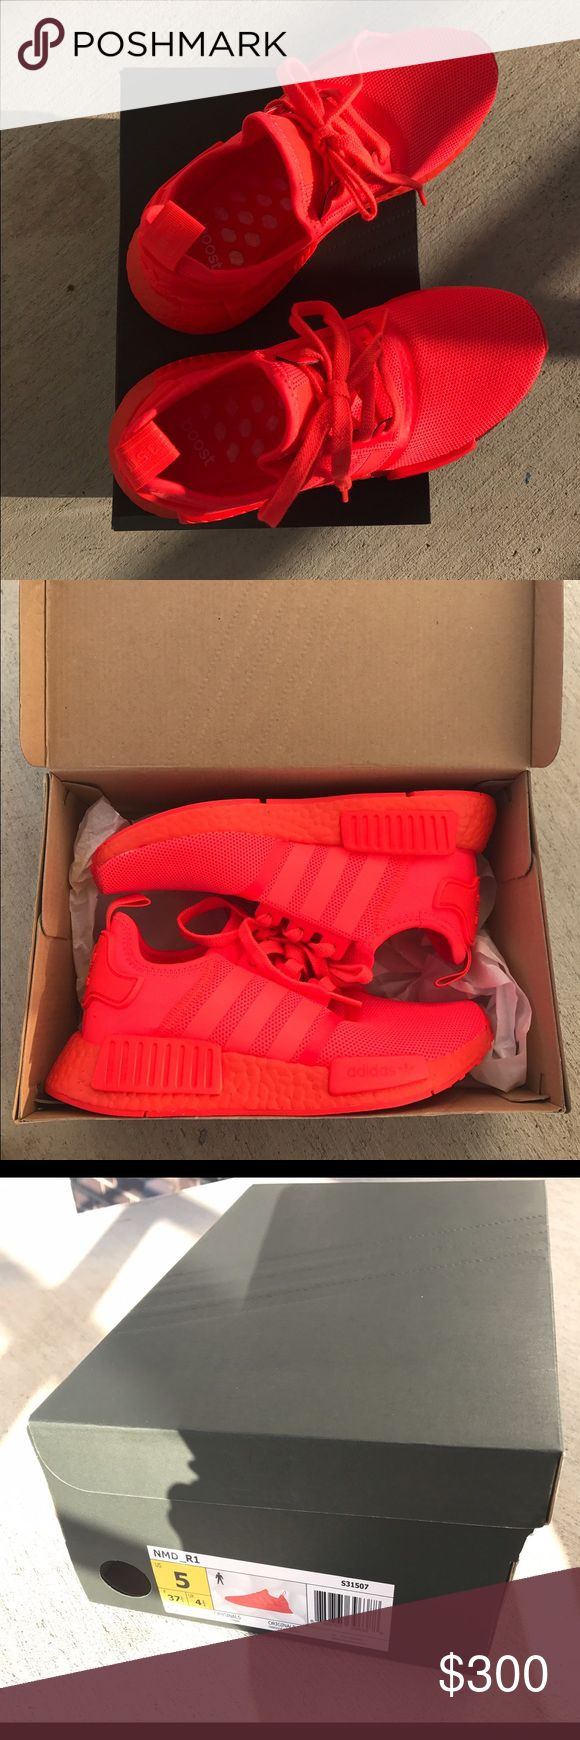 BRAND NEW Adidas NMD R1 2017 Solar Red Size 7 BRAND NEW Adidas NMD R1 in Solar Red (neon red/orange) Men's Size 5/Women's Size 7. These were purchased directly from Adidas.com on Feb 27 and sold out within minutes. Mint condition, never worn. Adidas Shoes Athletic Shoes